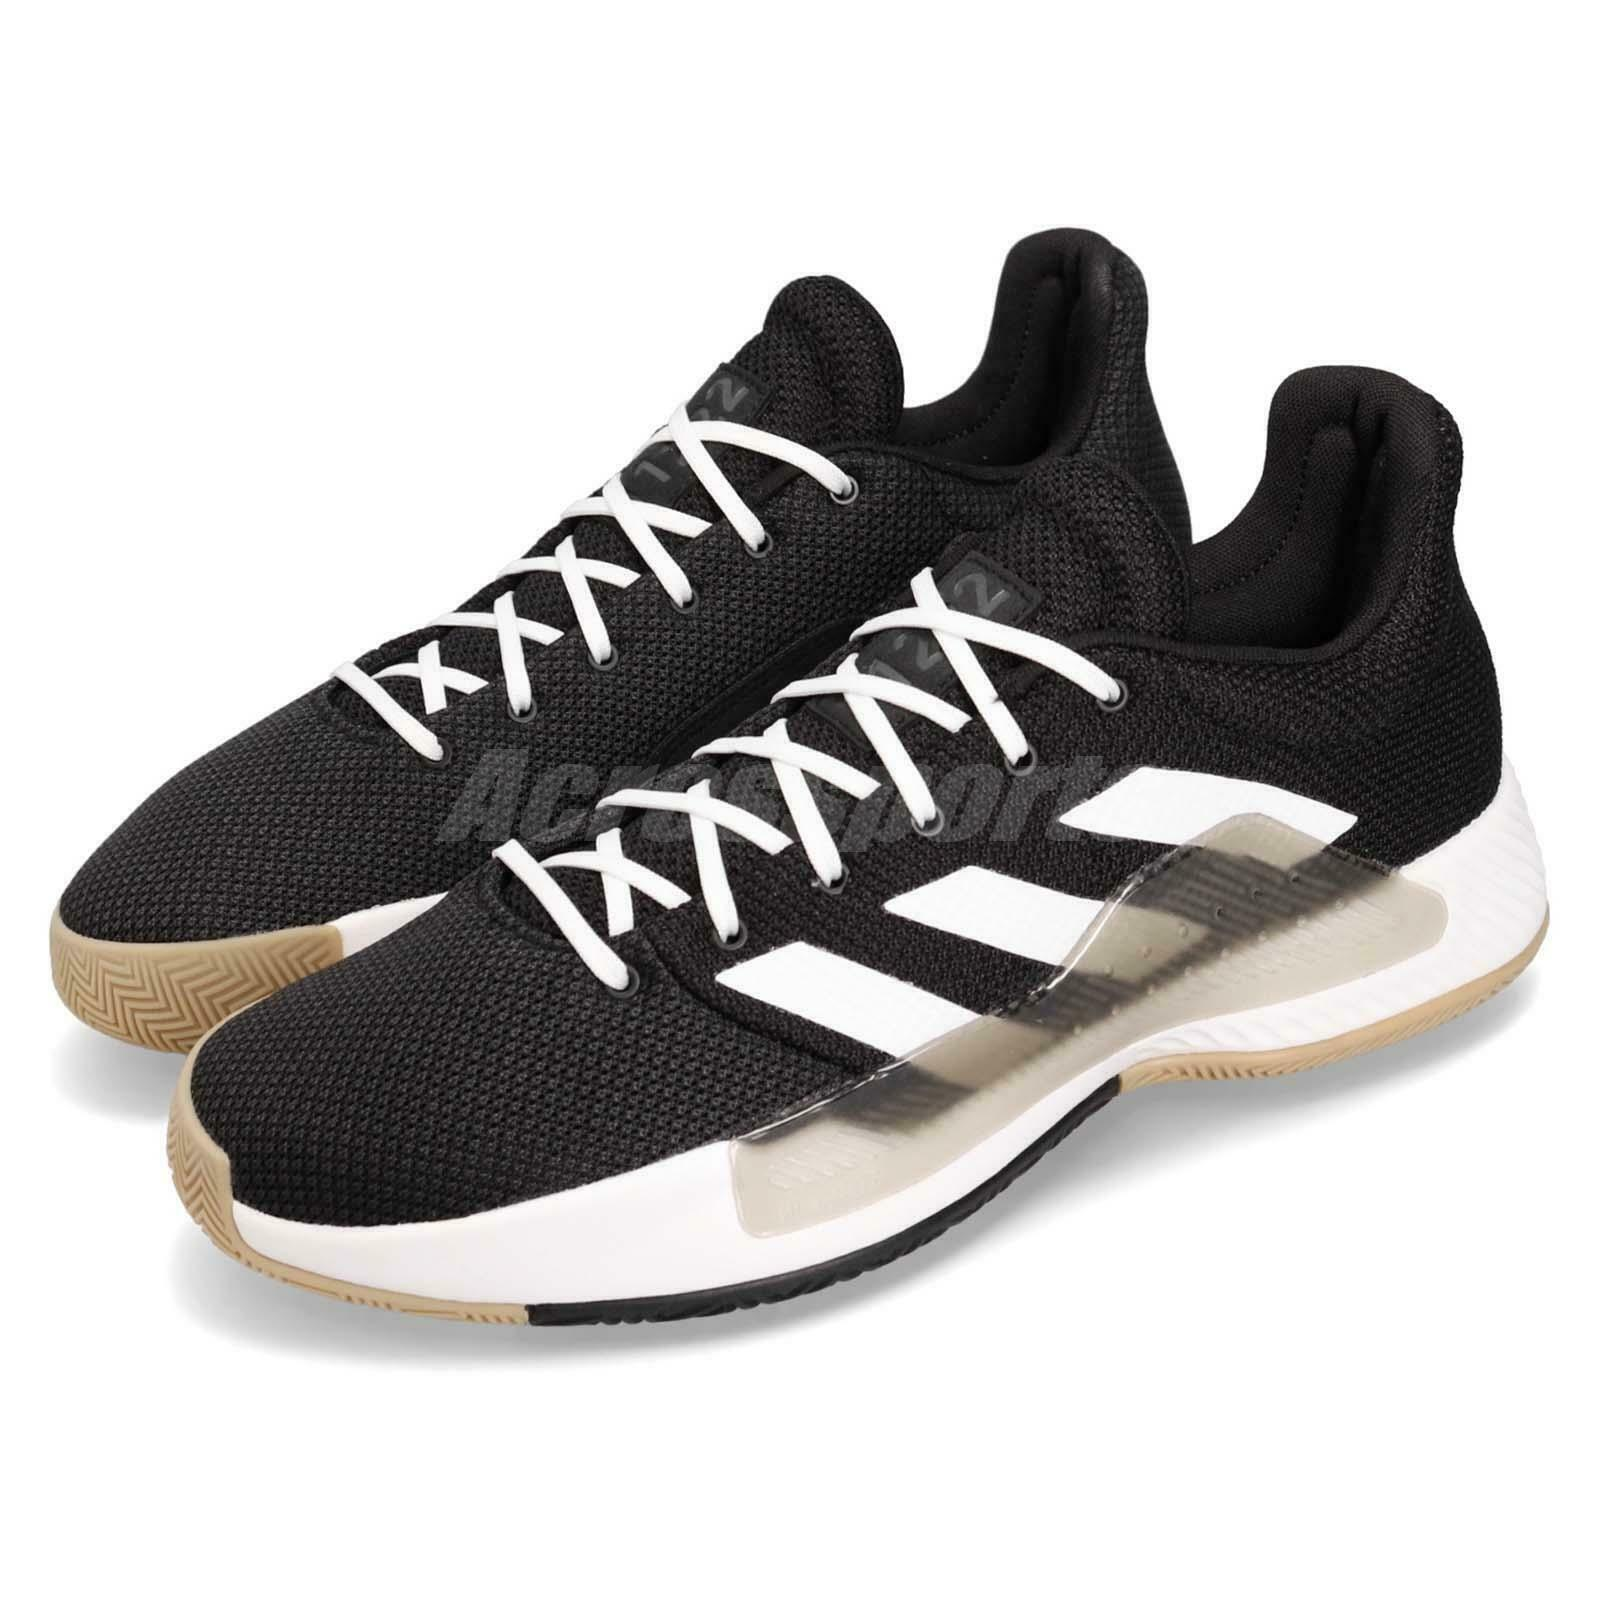 Adidas Pro Bounce Madness Low 2019 Black White Grey Men Basketball shoes BB9280